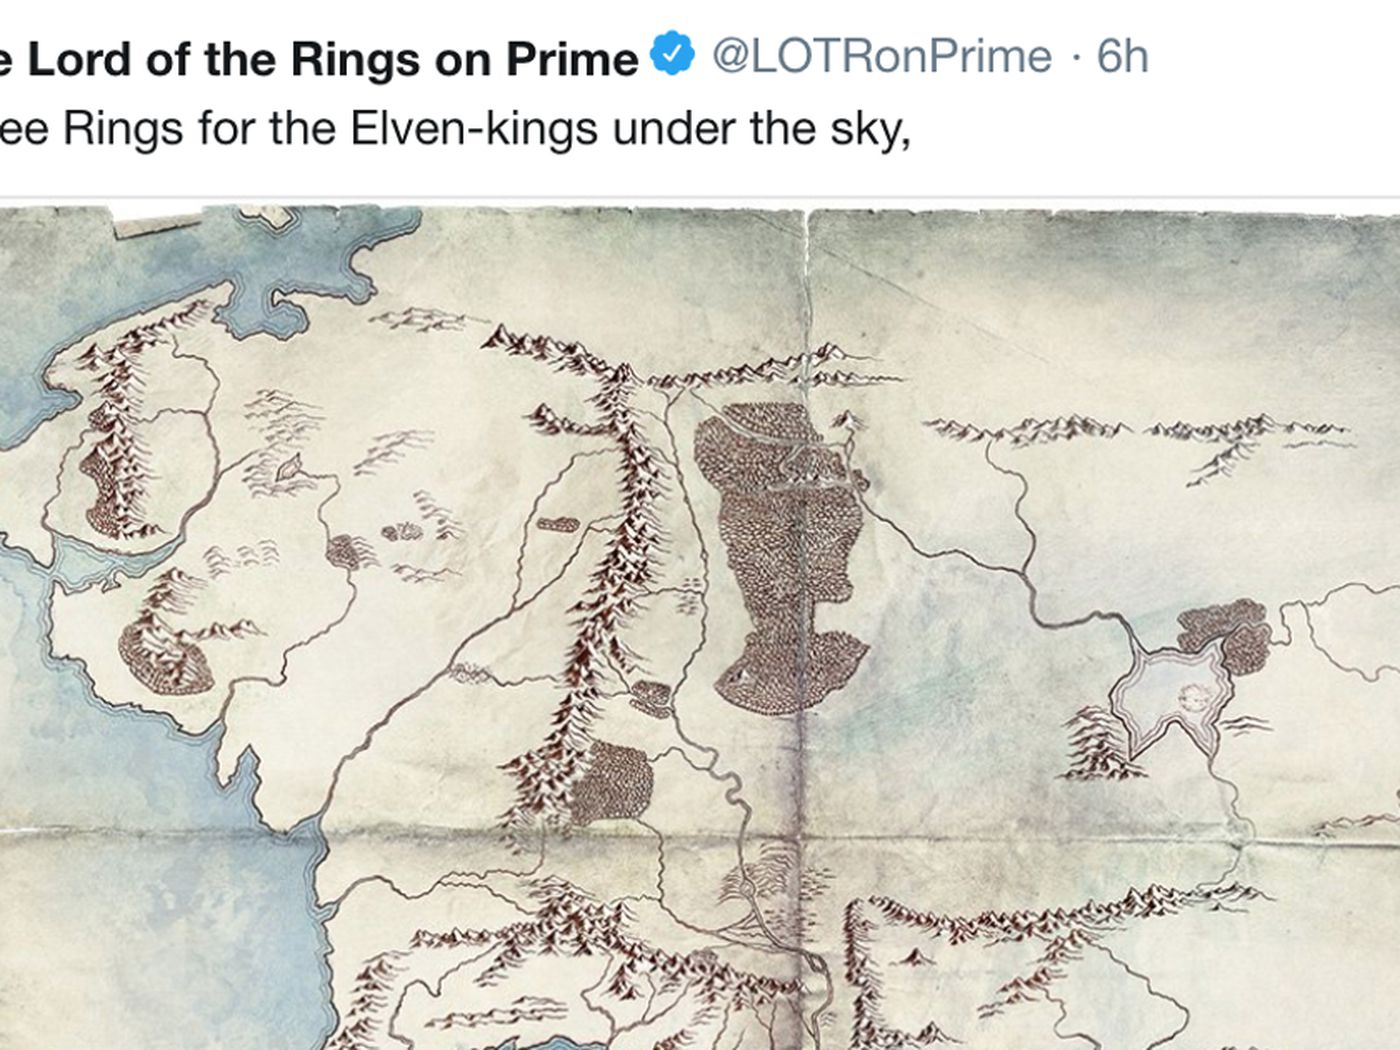 Middle Earth Map From Amazon S Lord Of The Rings Tv Series Gives